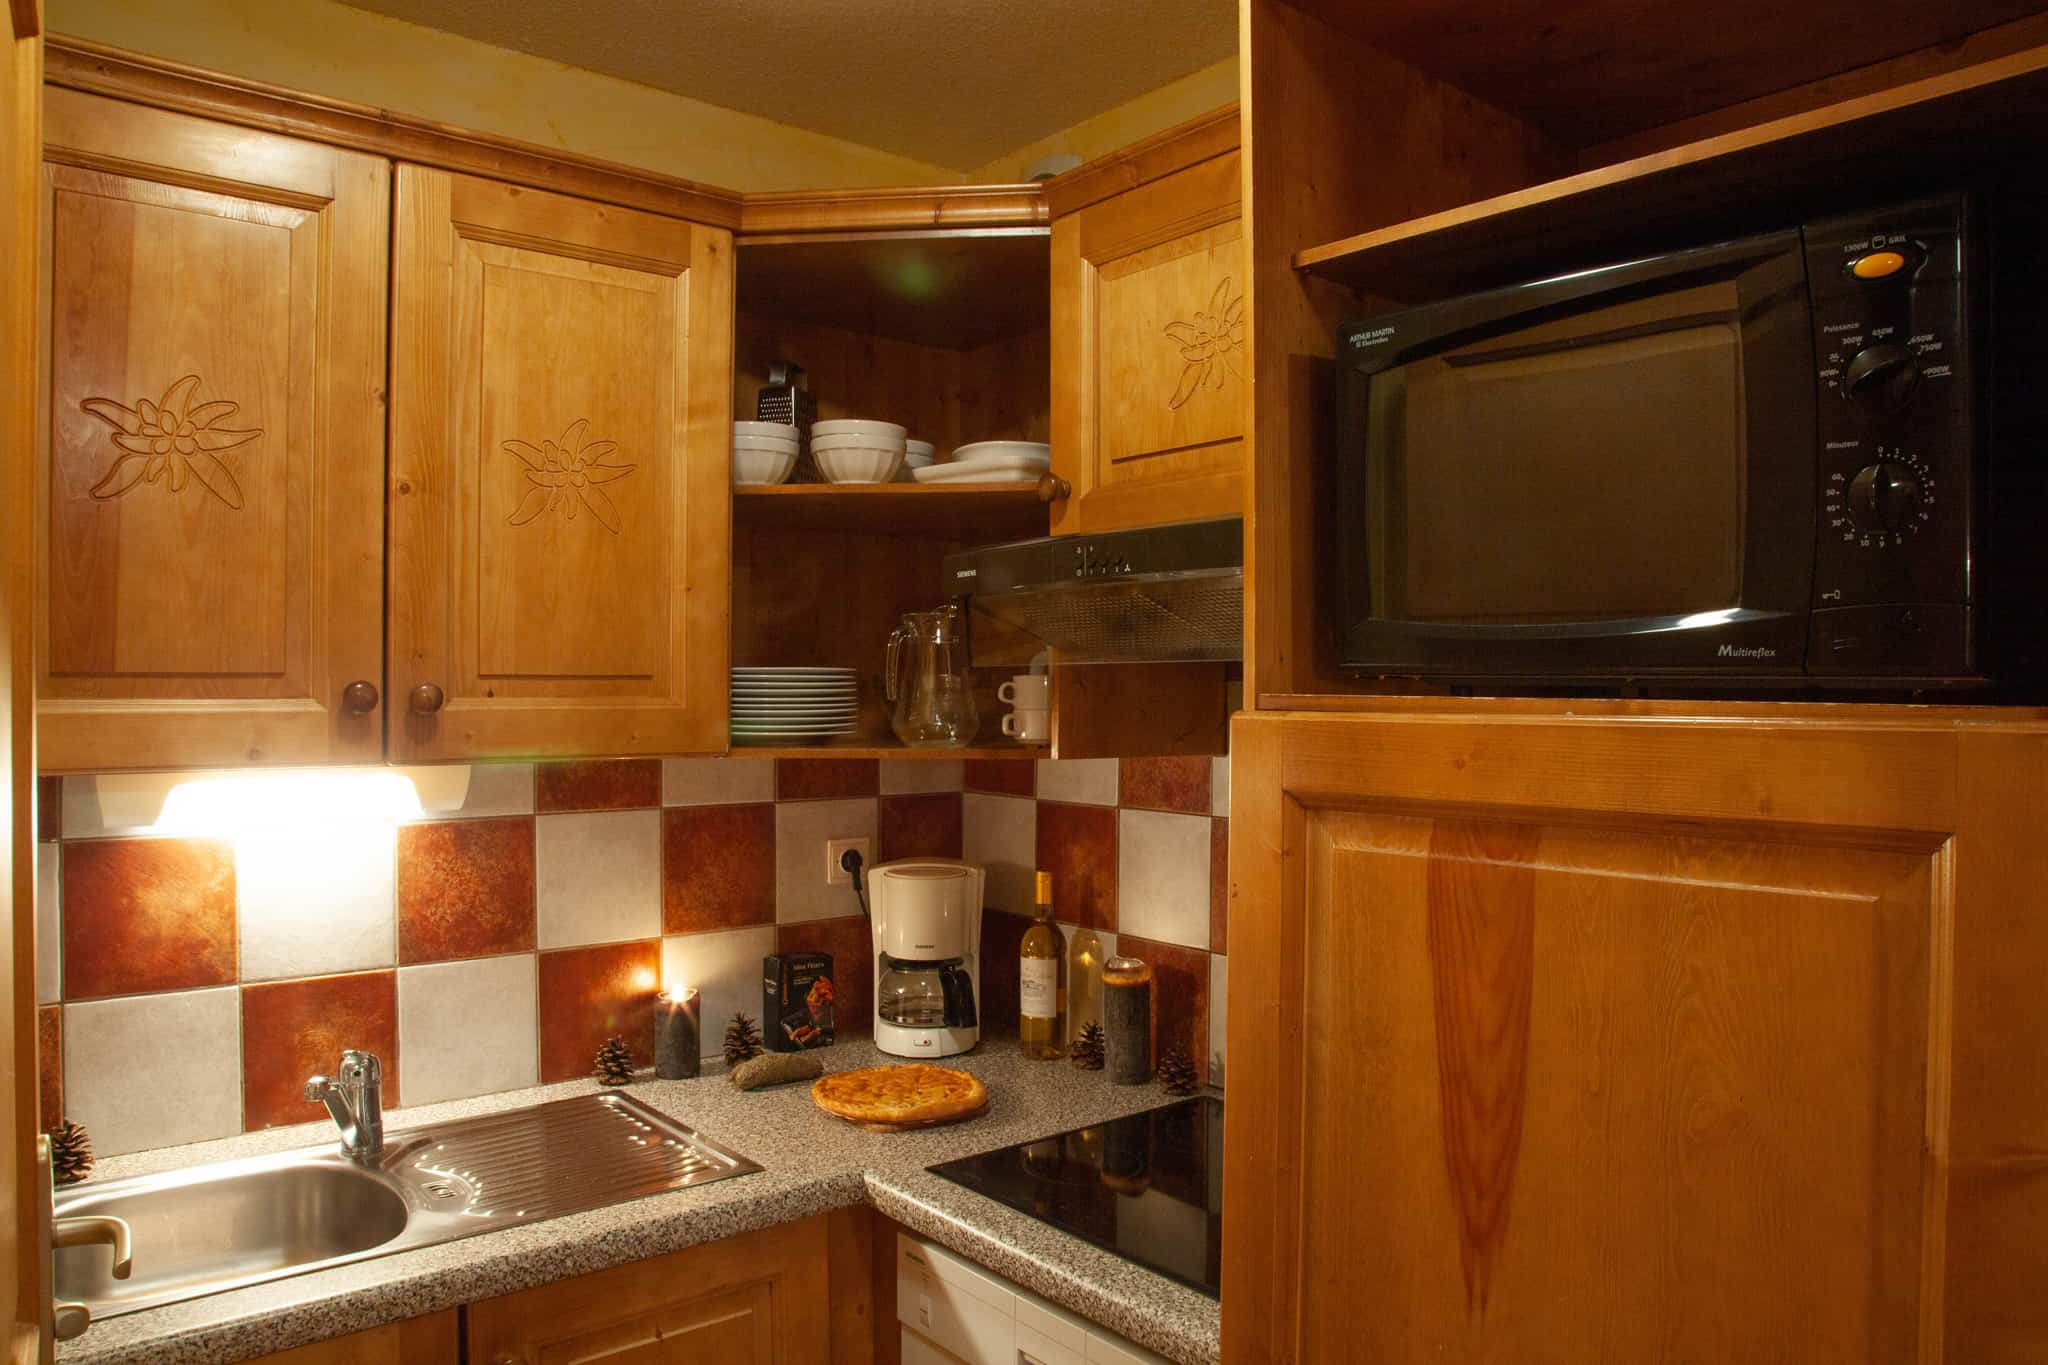 1-VCH-Types-Appartement-4-6pers-cuisine